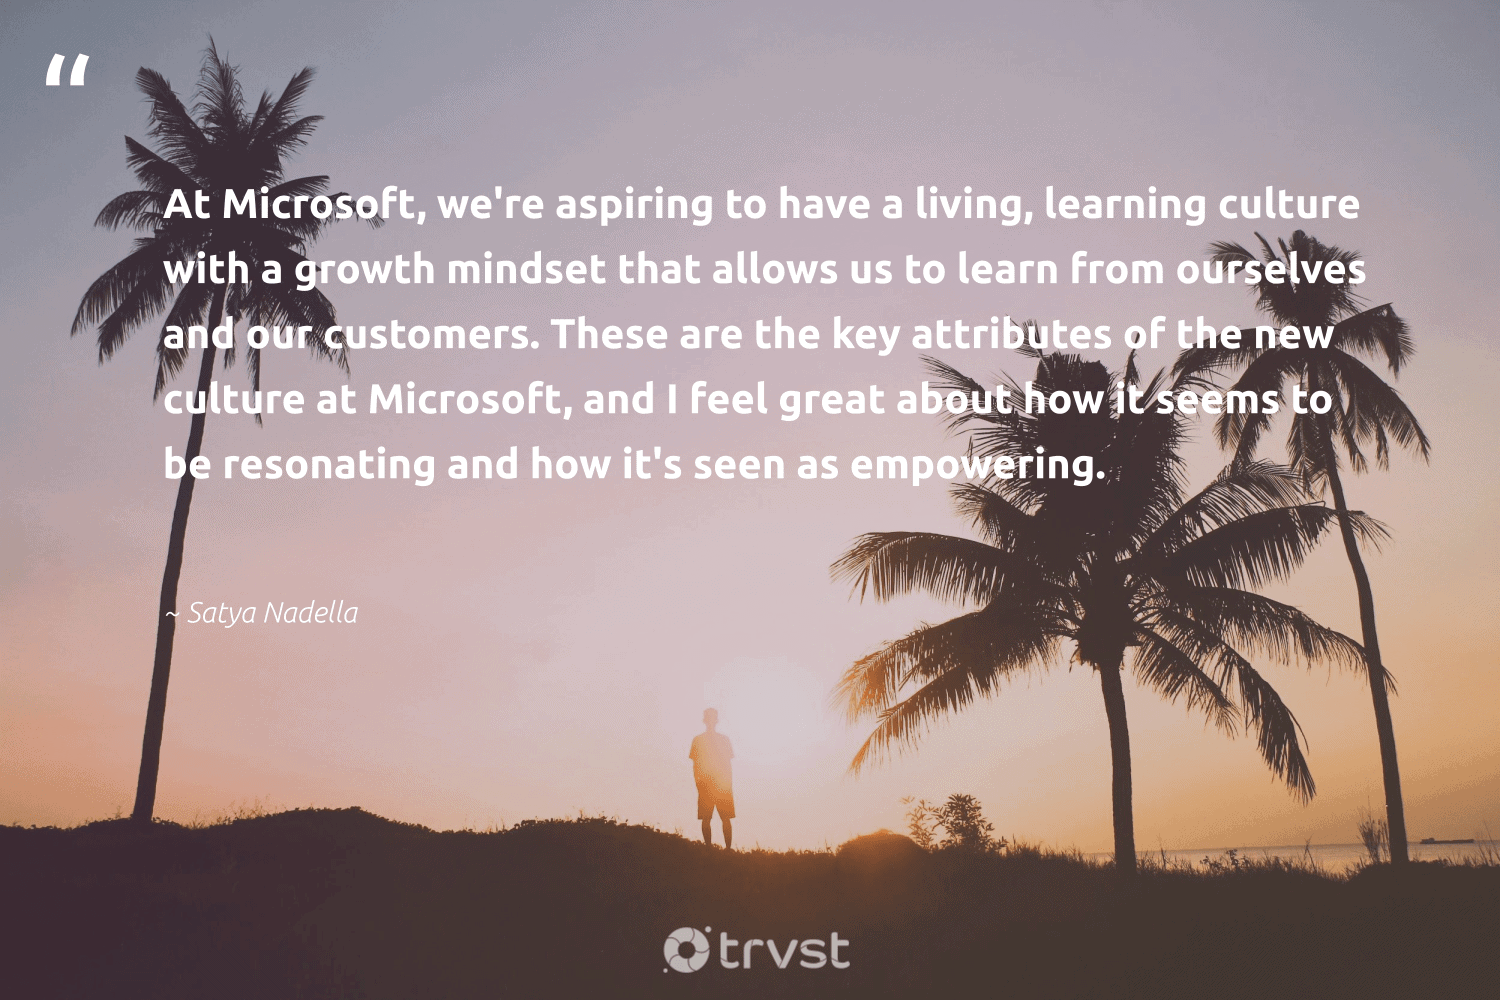 """""""At Microsoft, we're aspiring to have a living, learning culture with a growth mindset that allows us to learn from ourselves and our customers. These are the key attributes of the new culture at Microsoft, and I feel great about how it seems to be resonating and how it's seen as empowering.""""  - Satya Nadella #trvst #quotes #mindset #growthmindset #customers #mindfulness #goals #togetherwecan #health #dosomething #creativemindset #motivation"""